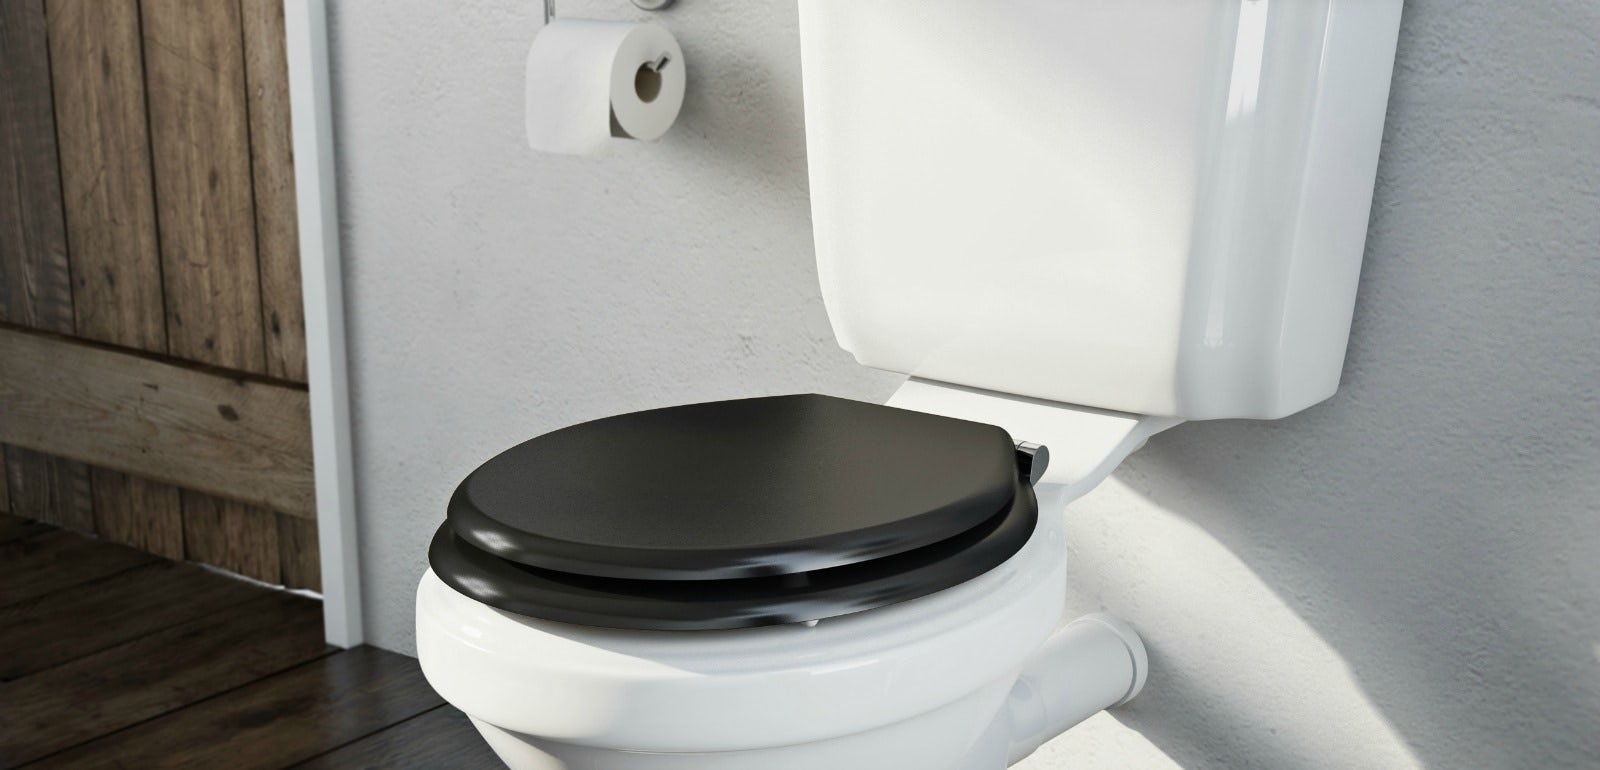 Cold comfort: The toilet seat dilemma